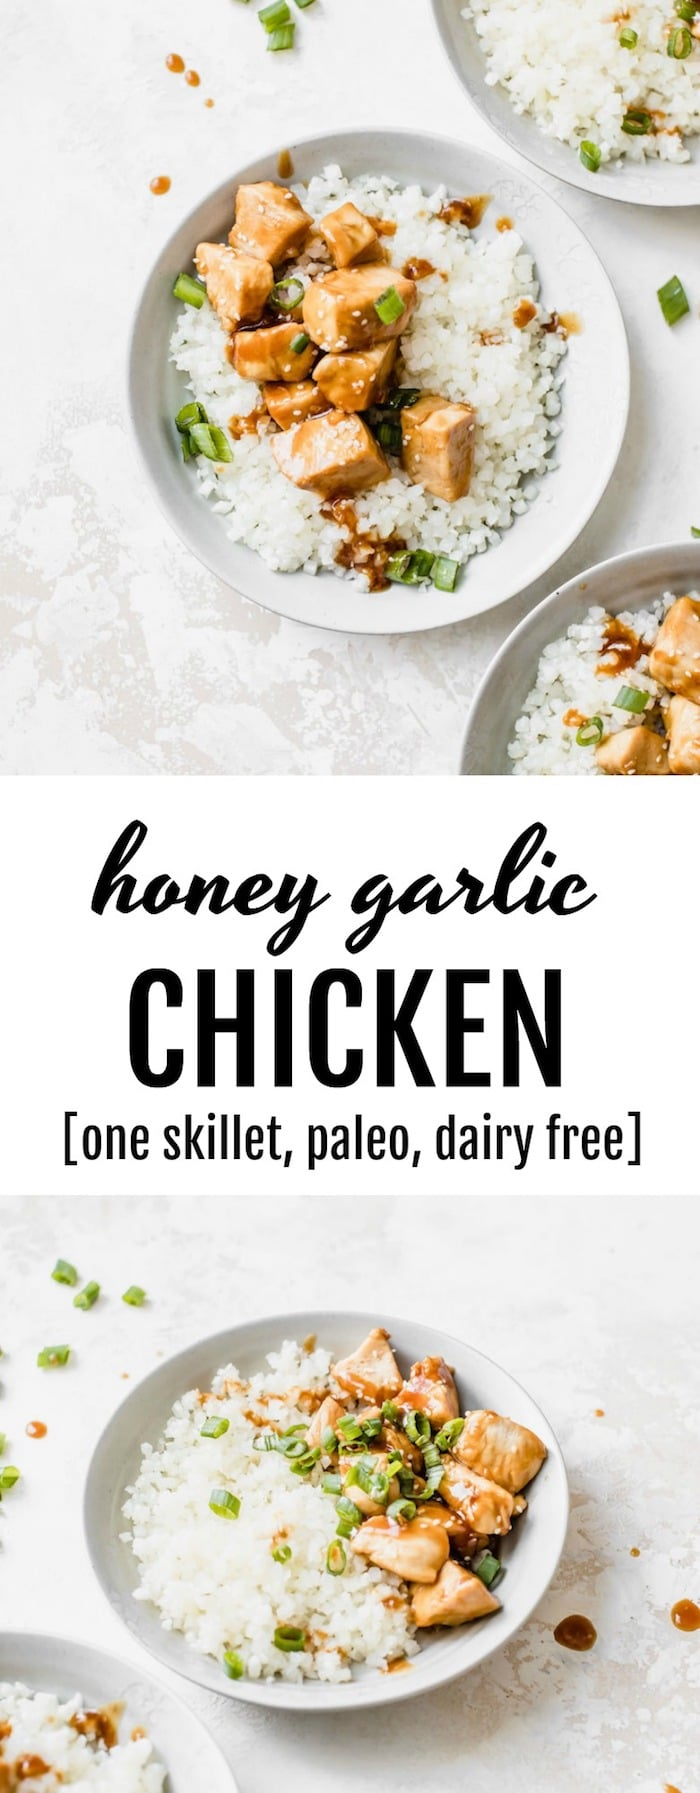 Honey Garlic Chicken is served with cauliflower rice and is a healthy #paleo dinner option | thealmondeater.com